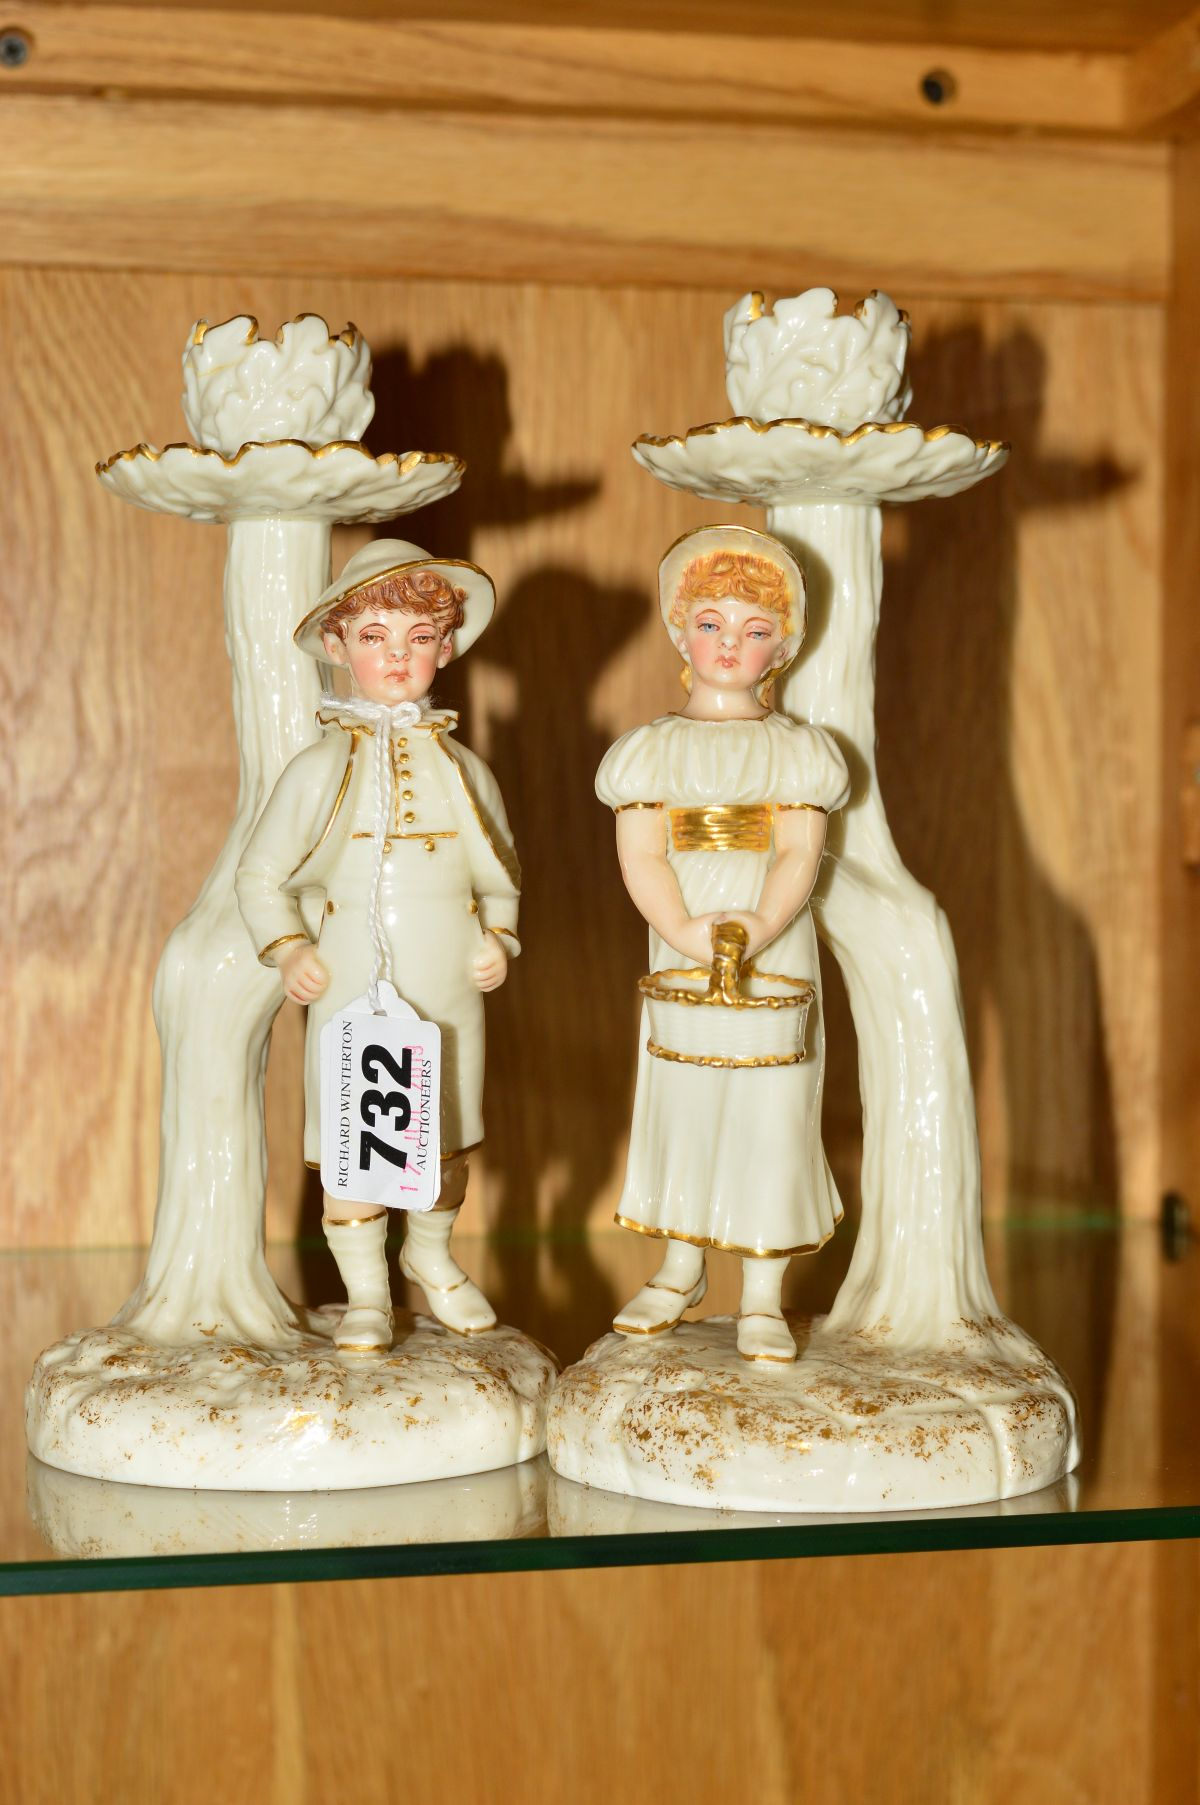 Lot 732 - A PAIR OF ROYAL WORCESTER KATE GREENWAY STYLE FIGURAL CANDLESTICKS, modelled by James Hadley,